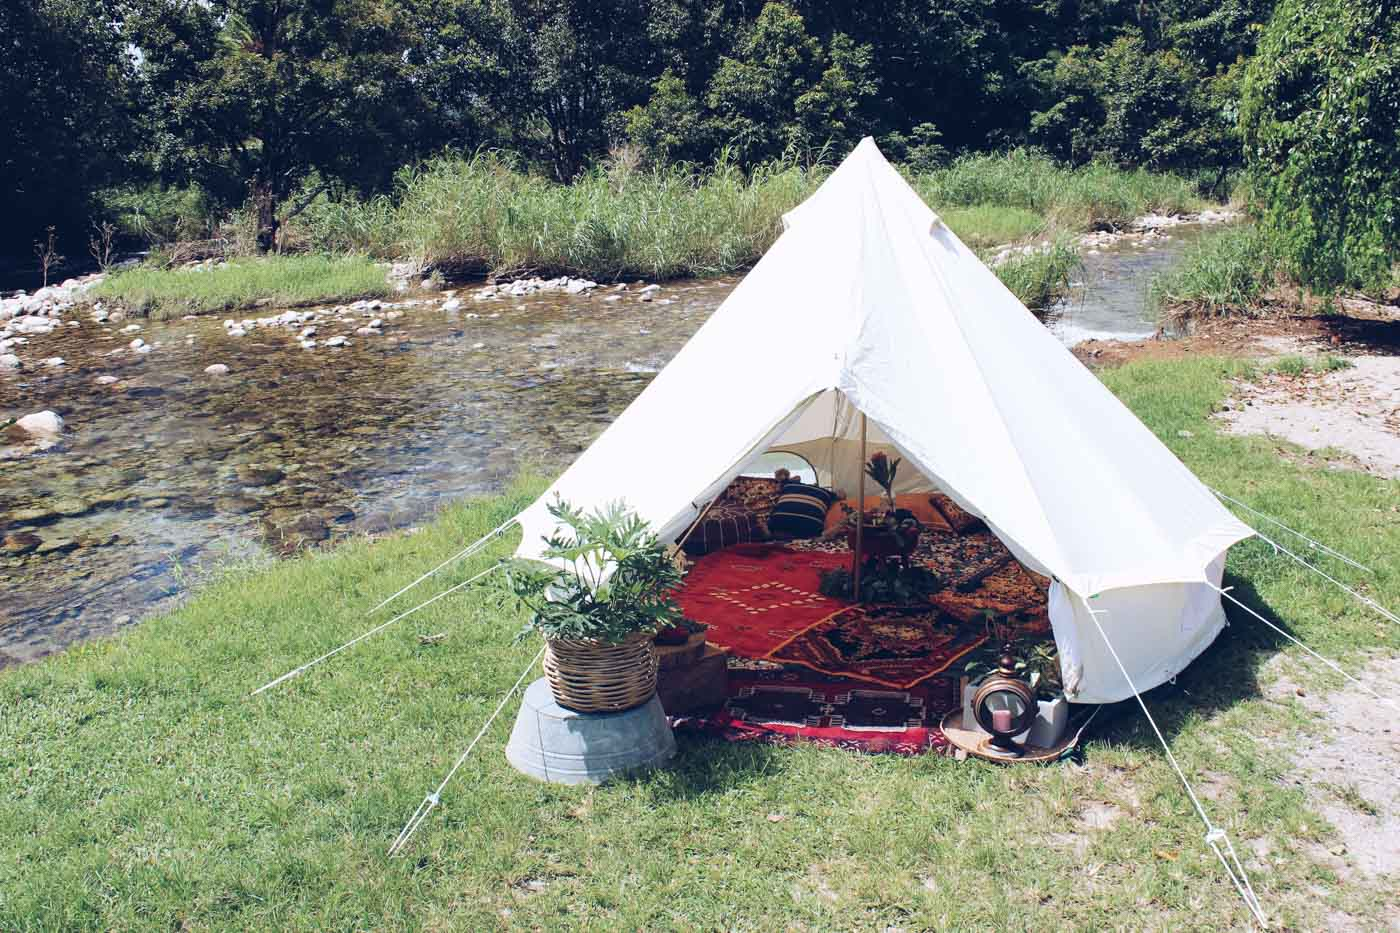 the_Collection_co_grazing_table_cairns_weddings_catering_grazing_platter_hire_pop_up_picnic_bell_tent_event_hire_styling-53-2.jpg